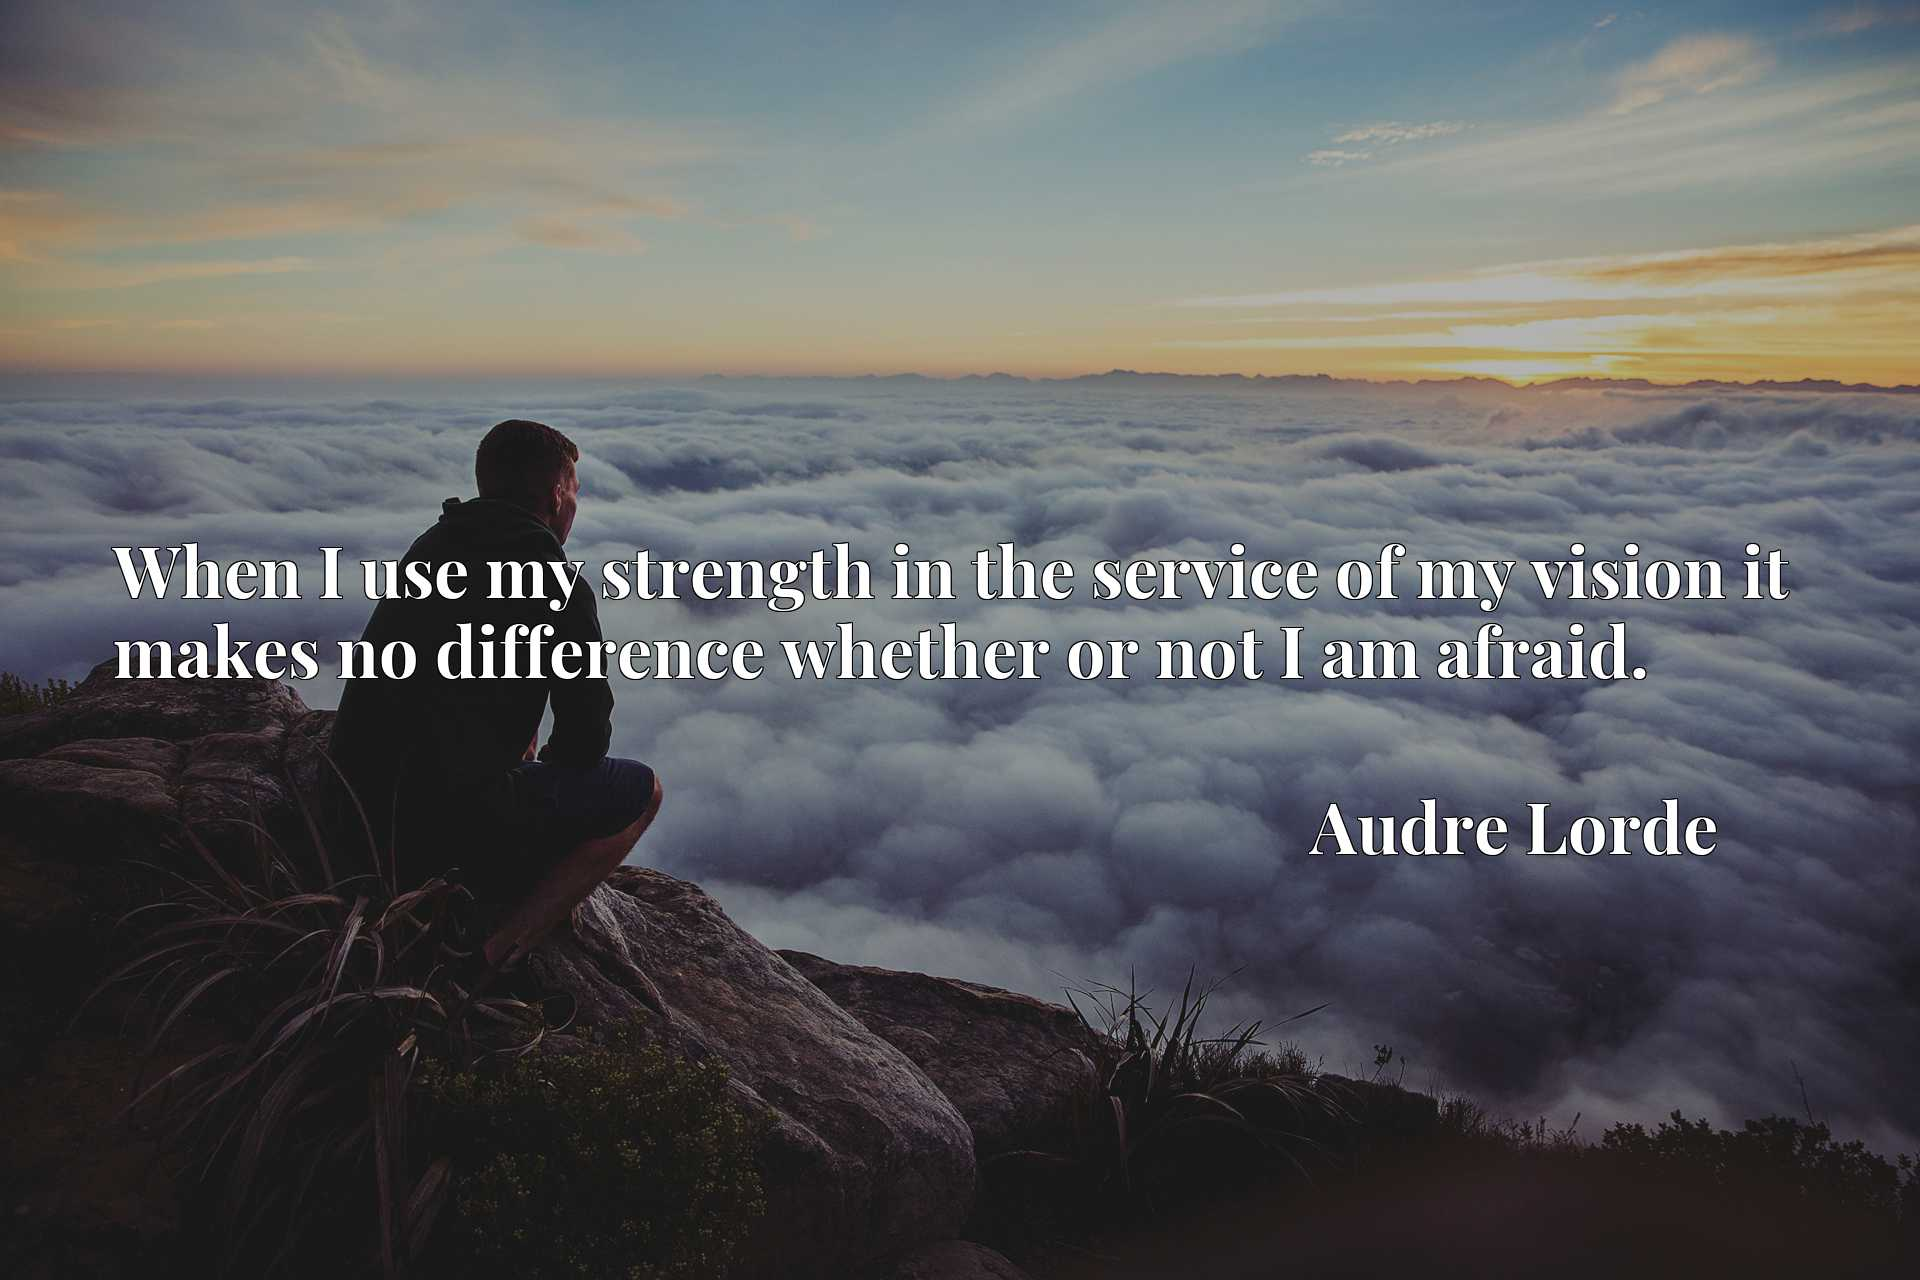 Quote Picture :When I use my strength in the service of my vision it makes no difference whether or not I am afraid.